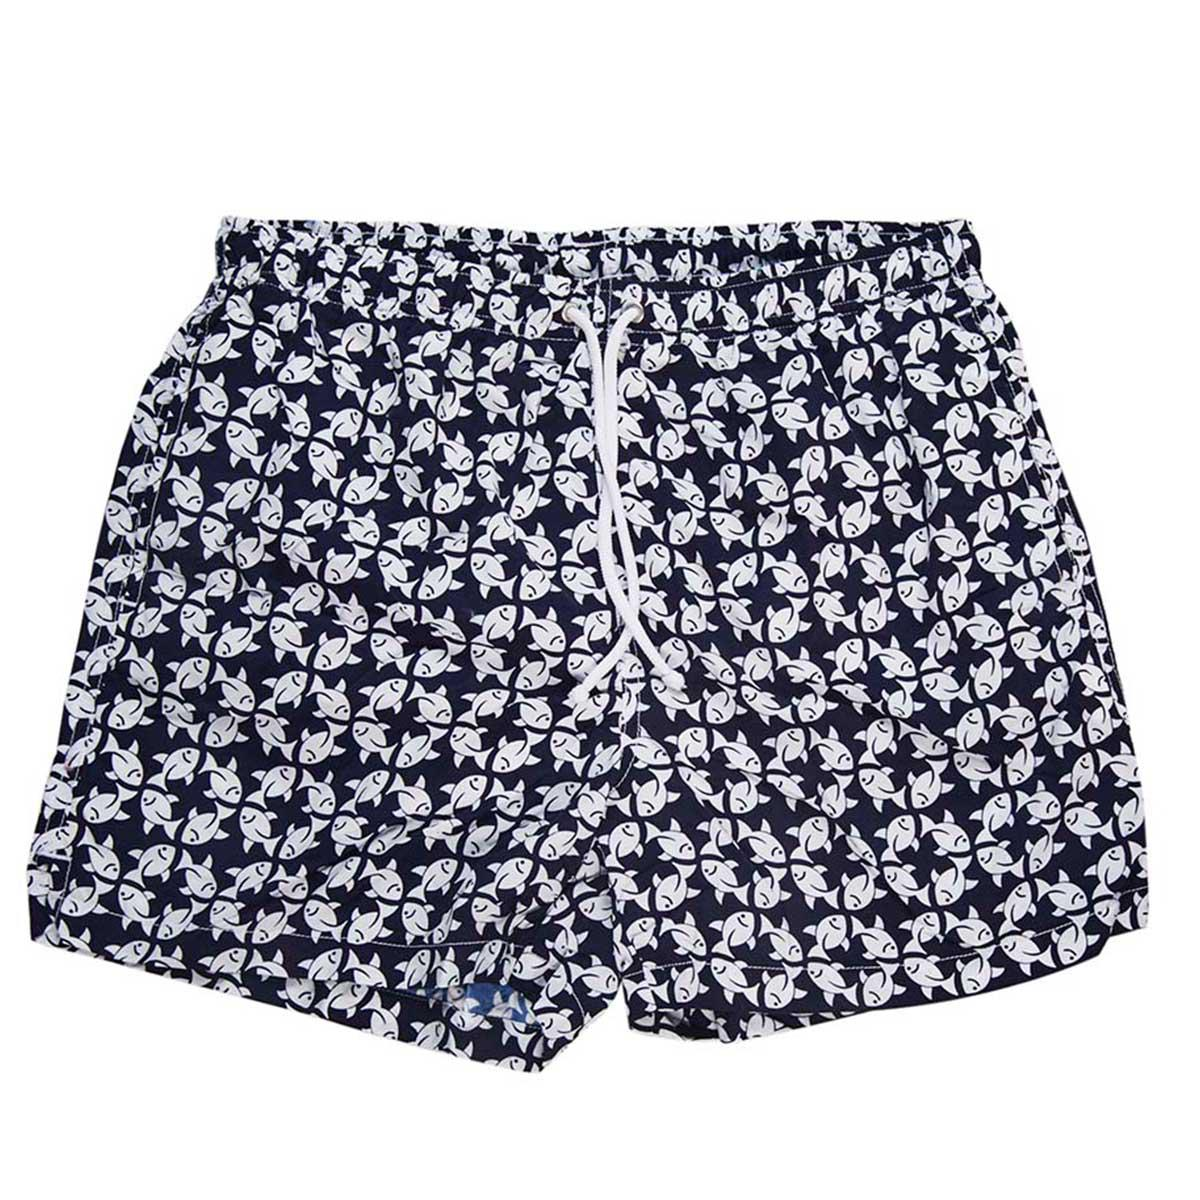 Blue and Red Patterned Swim Shorts Calabrese 1924 Official Online Great Deals Cheap Price Discount Supply PmGhhn8ns